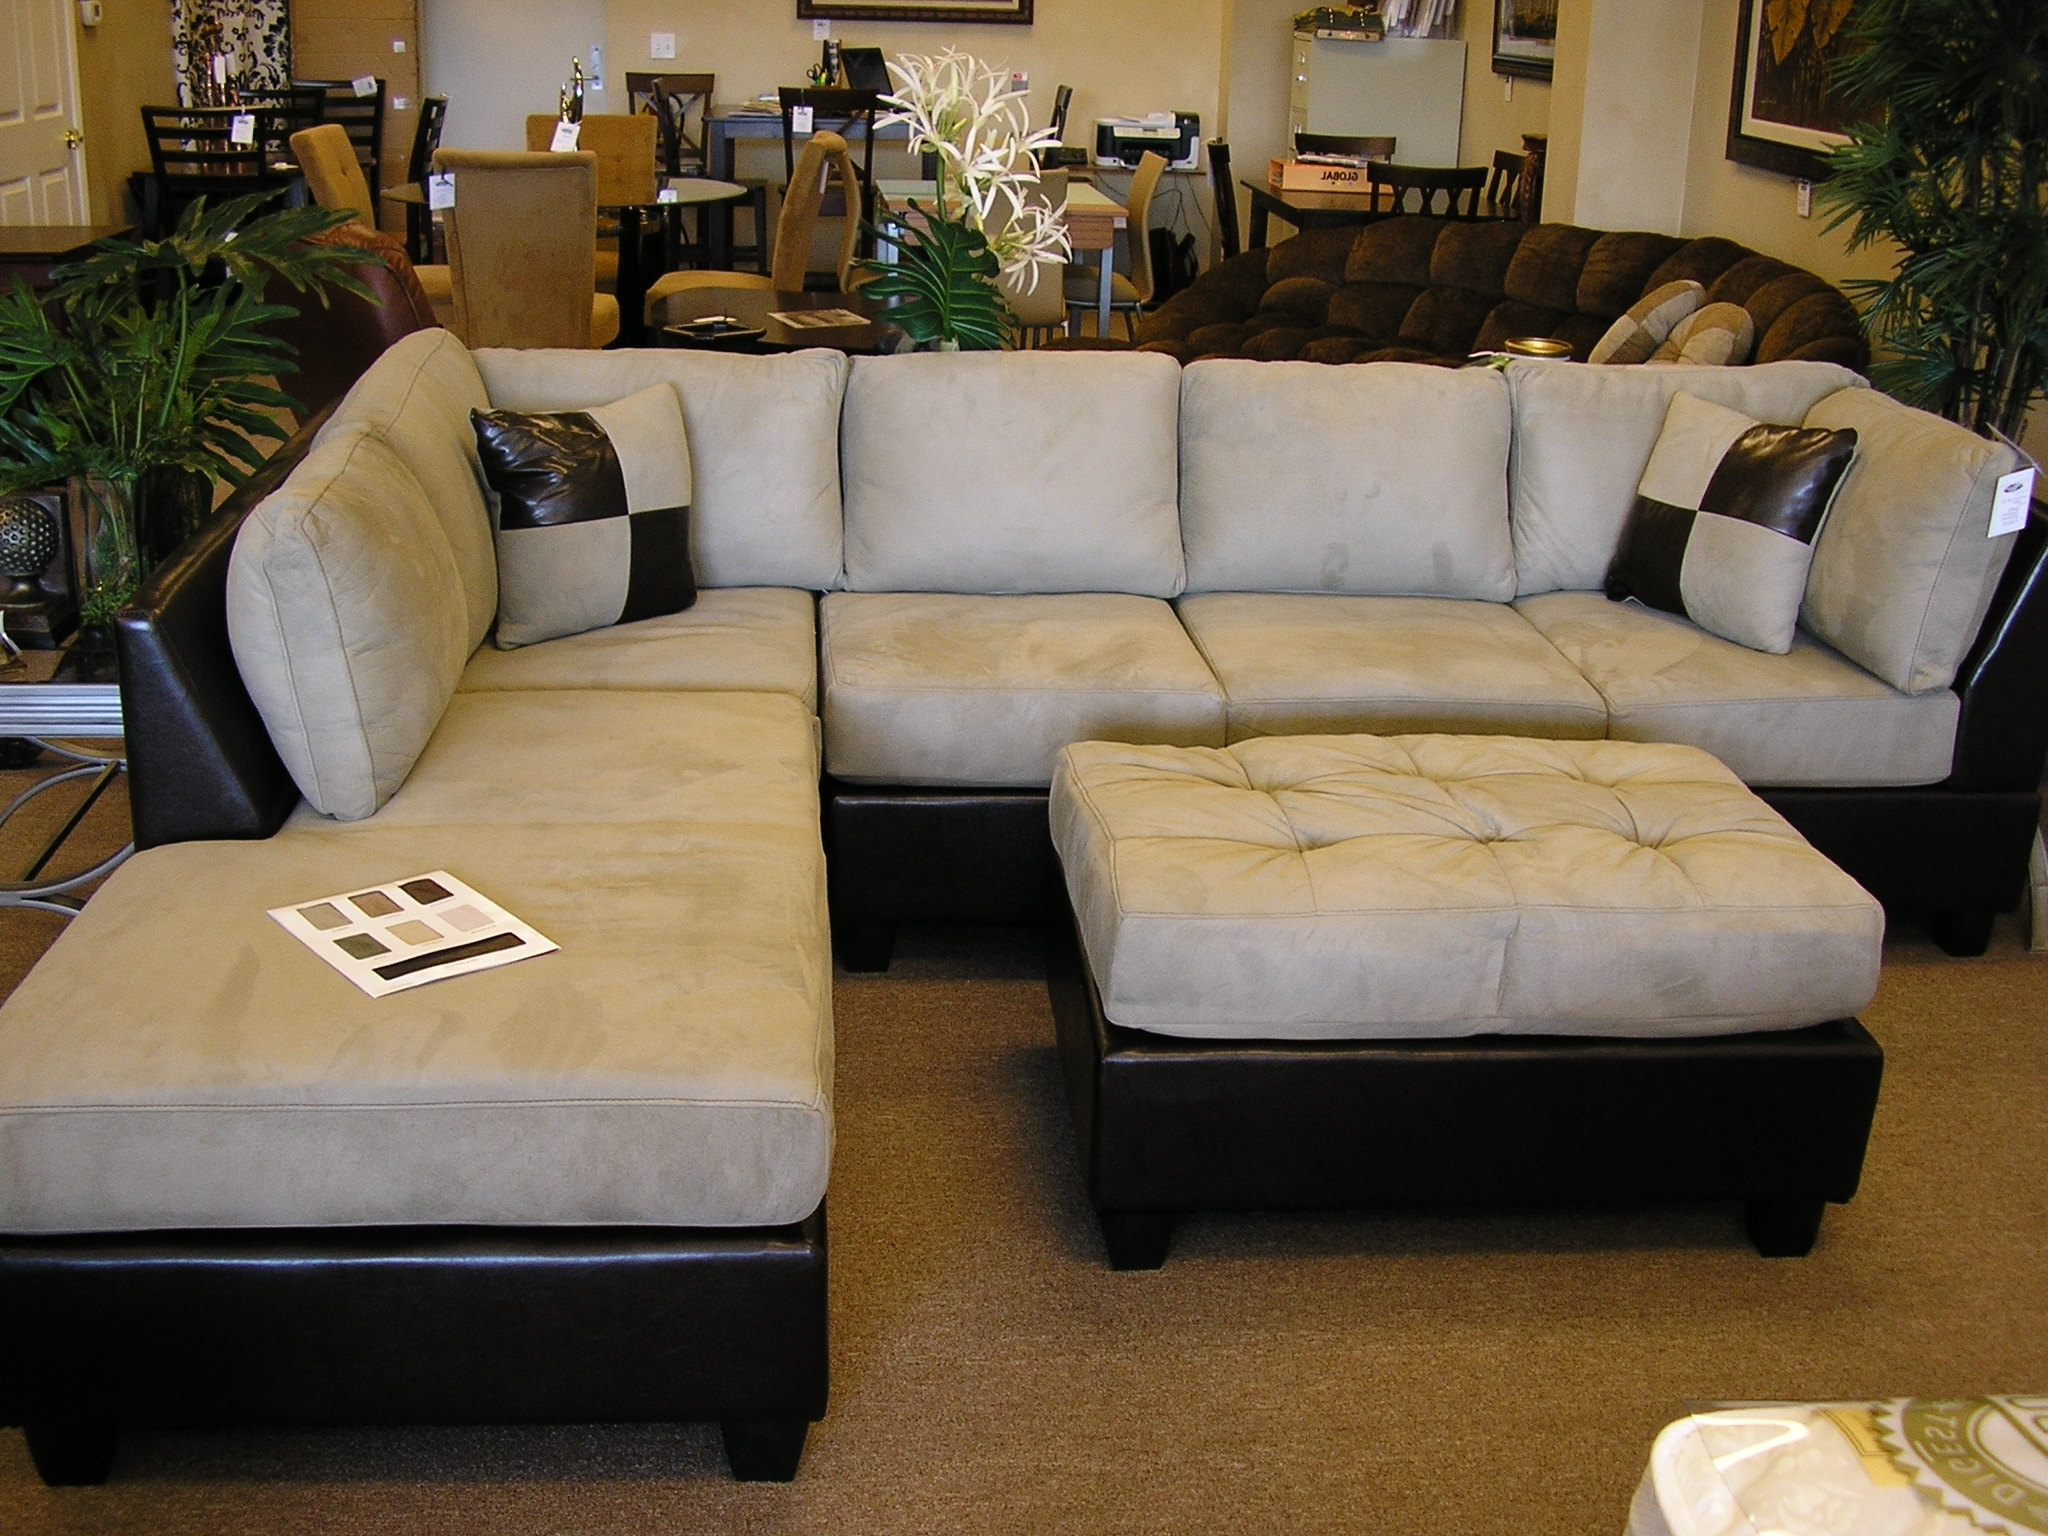 Sectional Sofas With Chaise And Ottoman Pertaining To Well Liked Furniture : Sectional Chaise Lounge Sofa Double Along With (View 4 of 20)